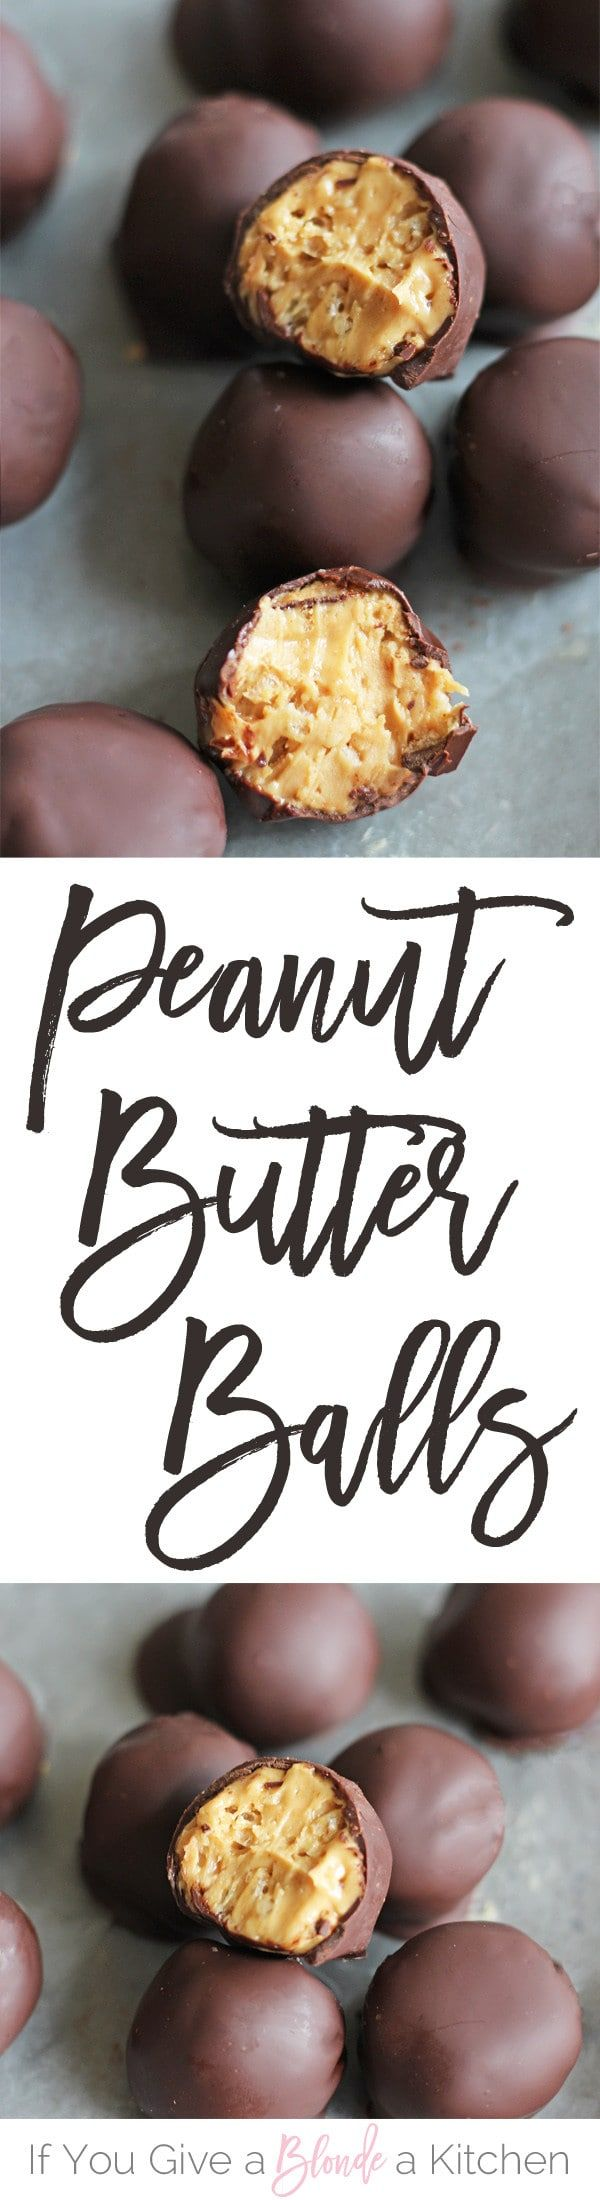 The best no bake peanut butter balls recipe—it uses rice krispies in the mix! It's the most popular post on the blog and uses only five ingredients. | @haleydwilliams